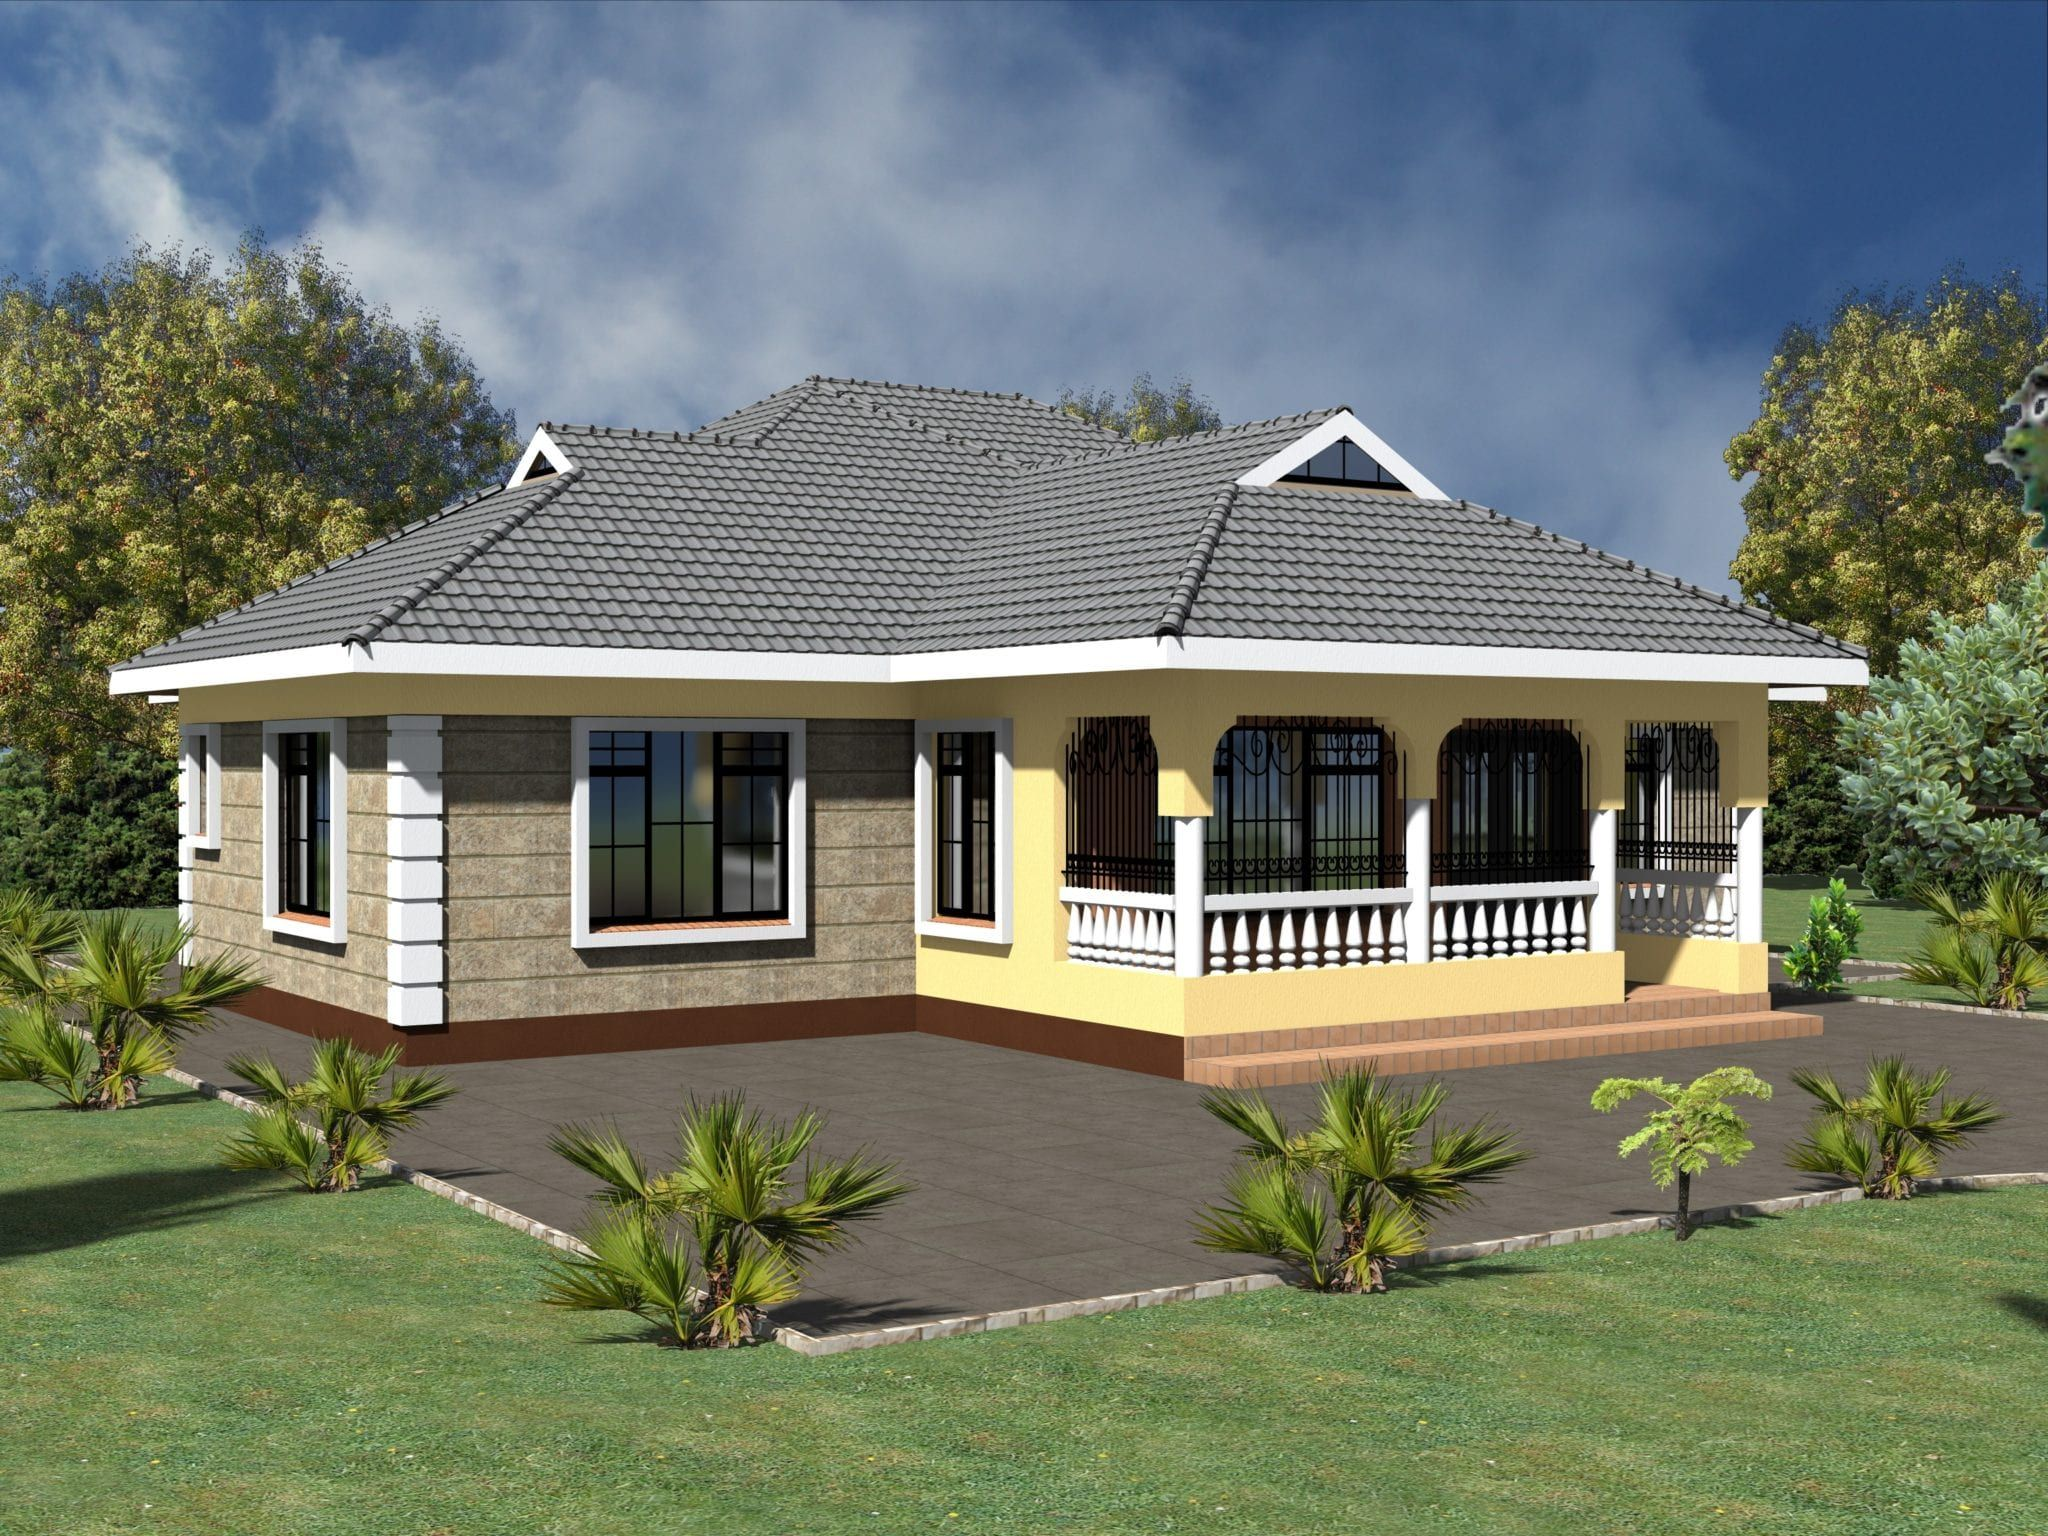 small minecraft house design 2021 on country farmhouse exterior paint colors 2021 id=59841